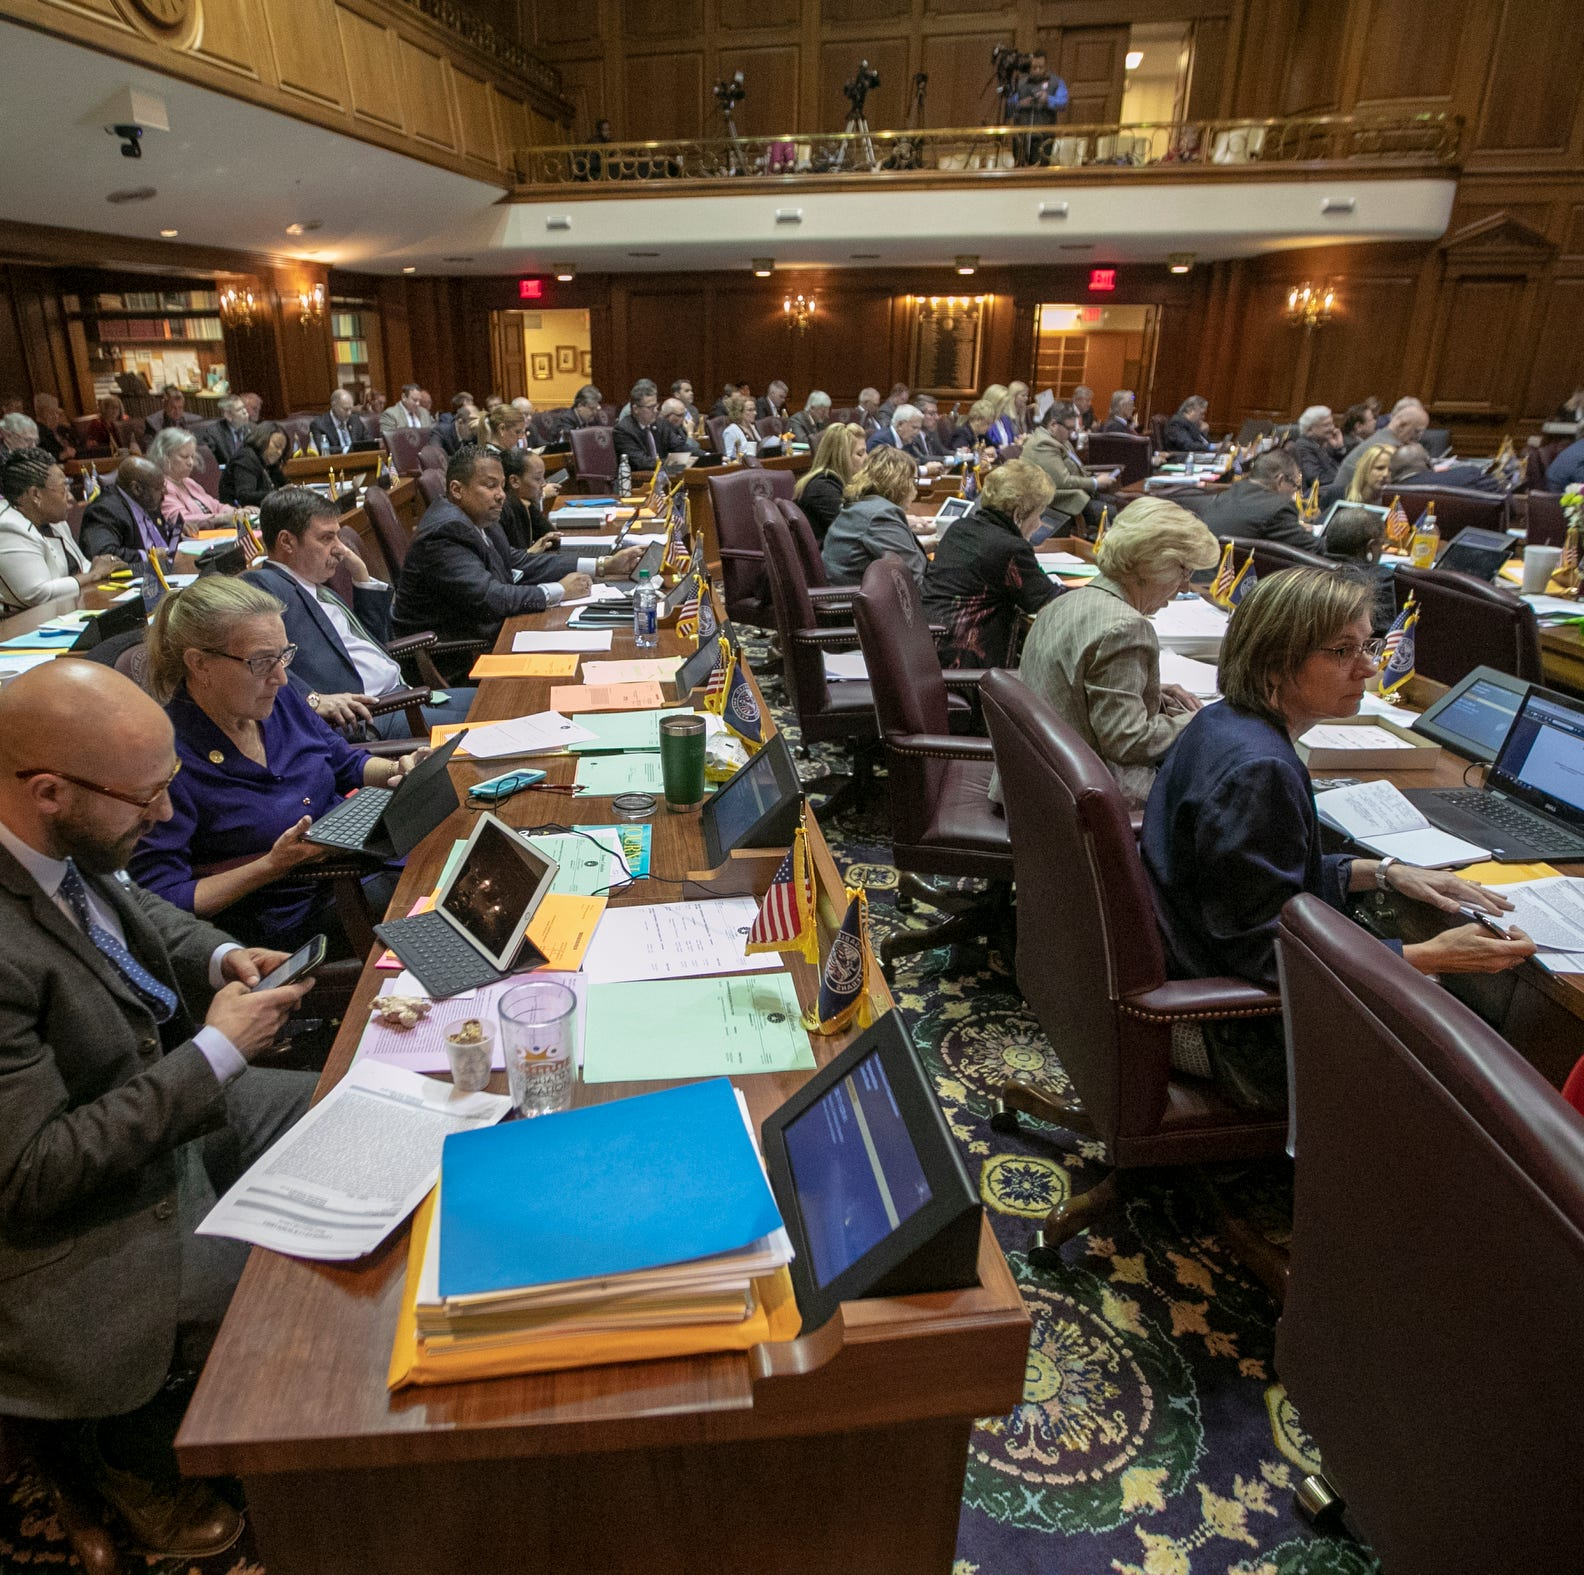 Here are 4 times Indiana lawmakers shaped controversial bills without public input in 2019